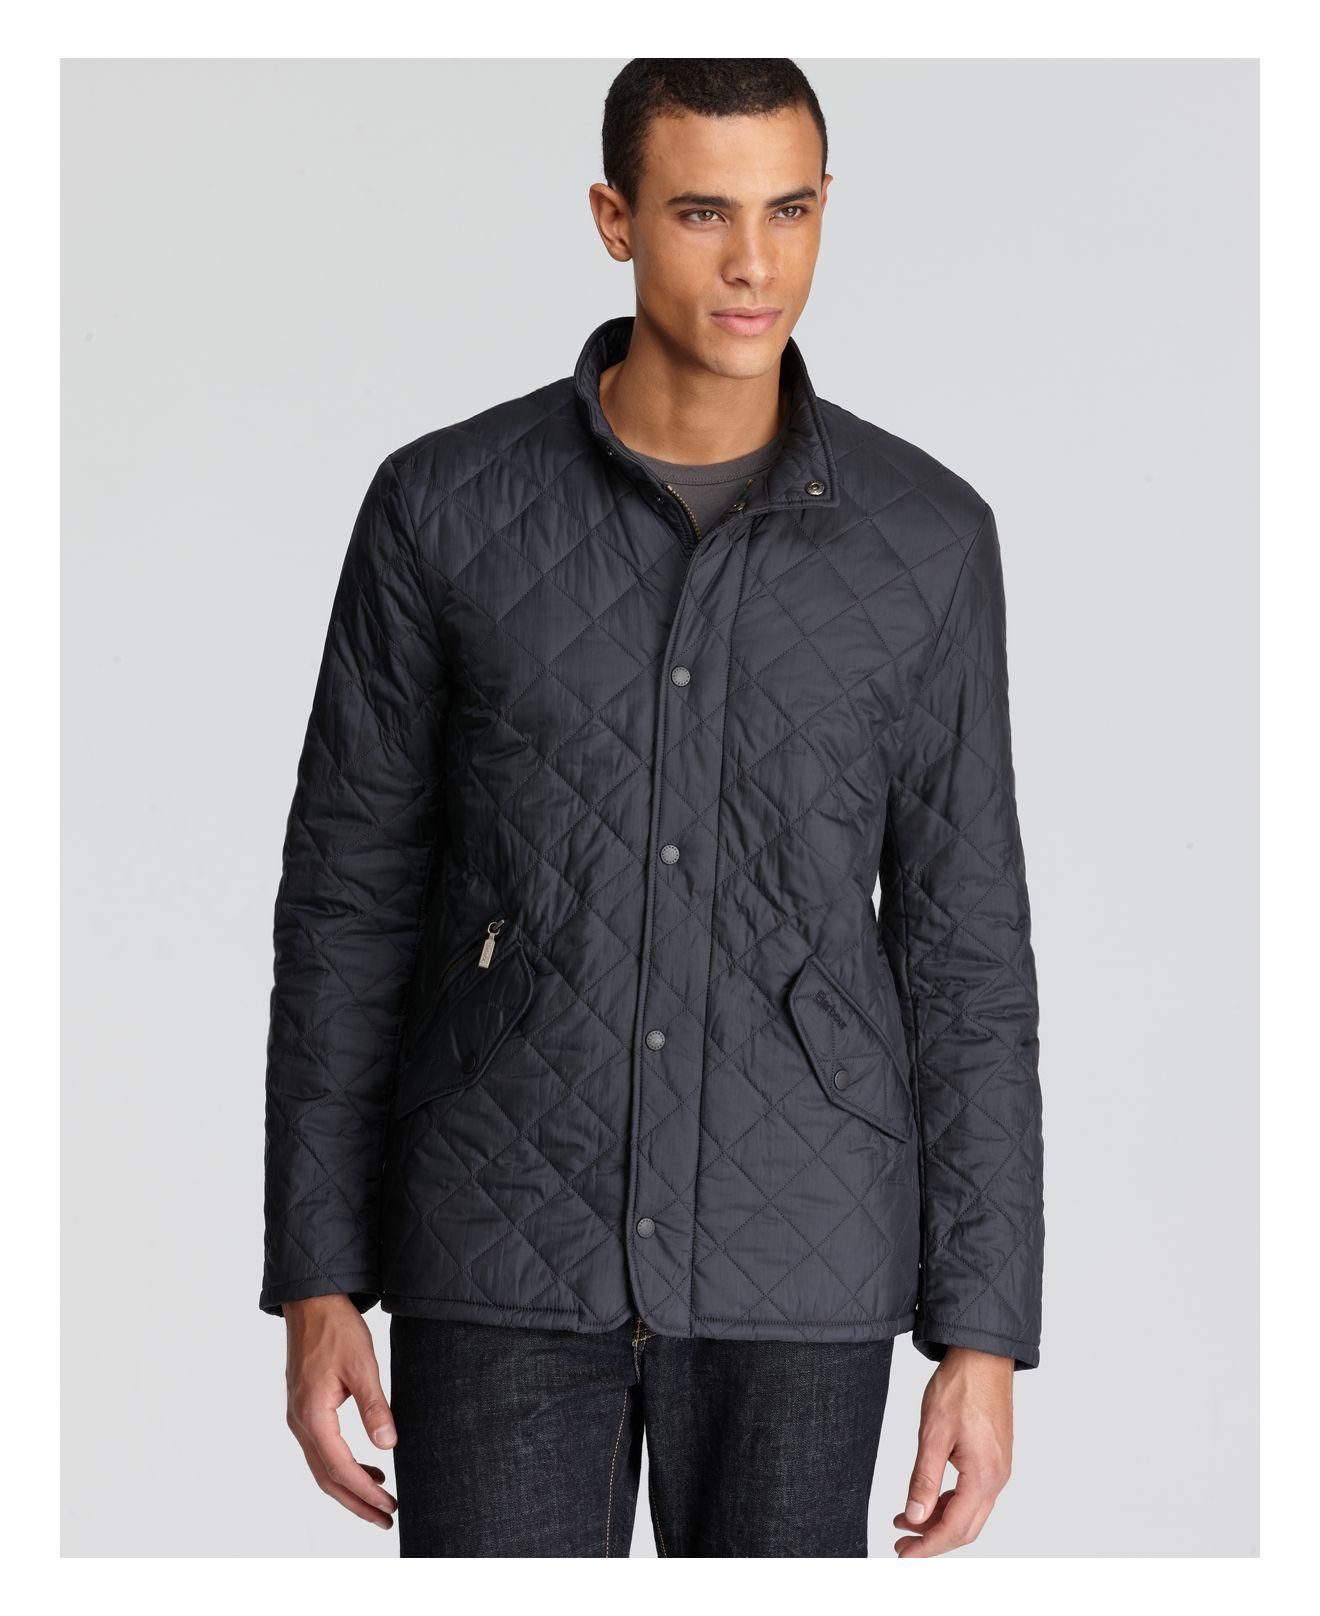 final country men devon prep products in jacket outerwear mens navy s sale barbour quilt by club quilted